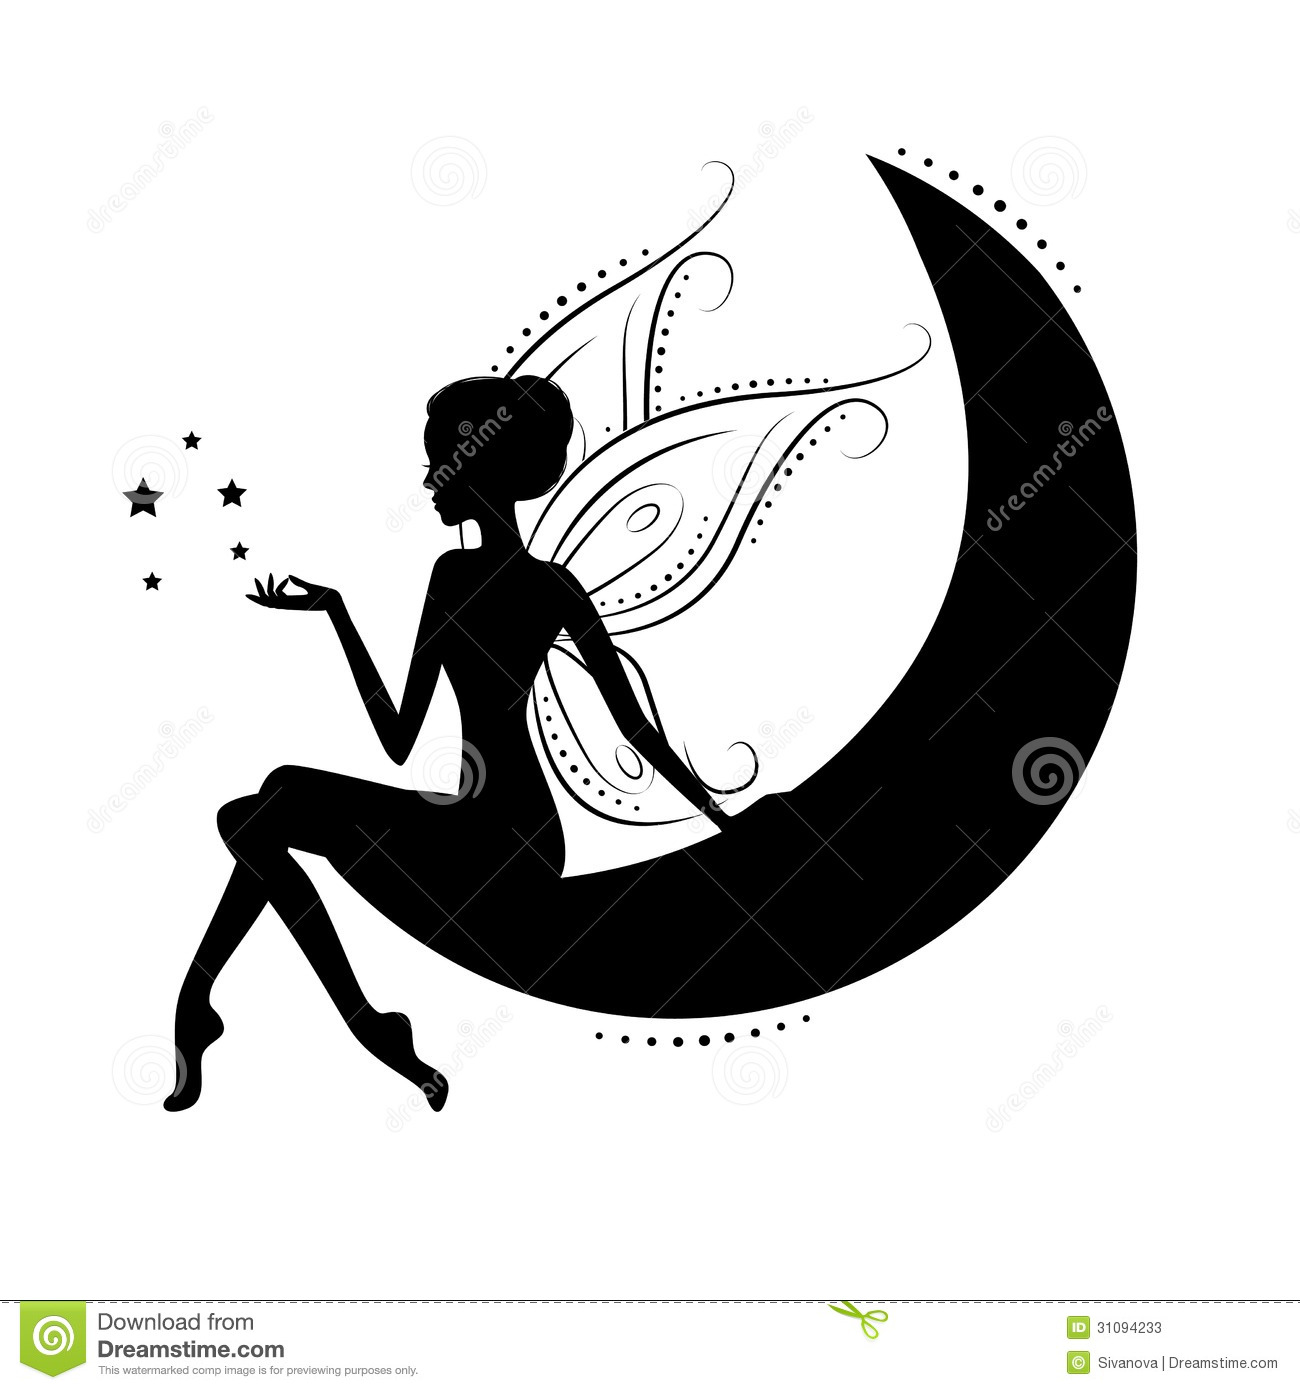 Fairy Sitting On The Moon Silhouette.